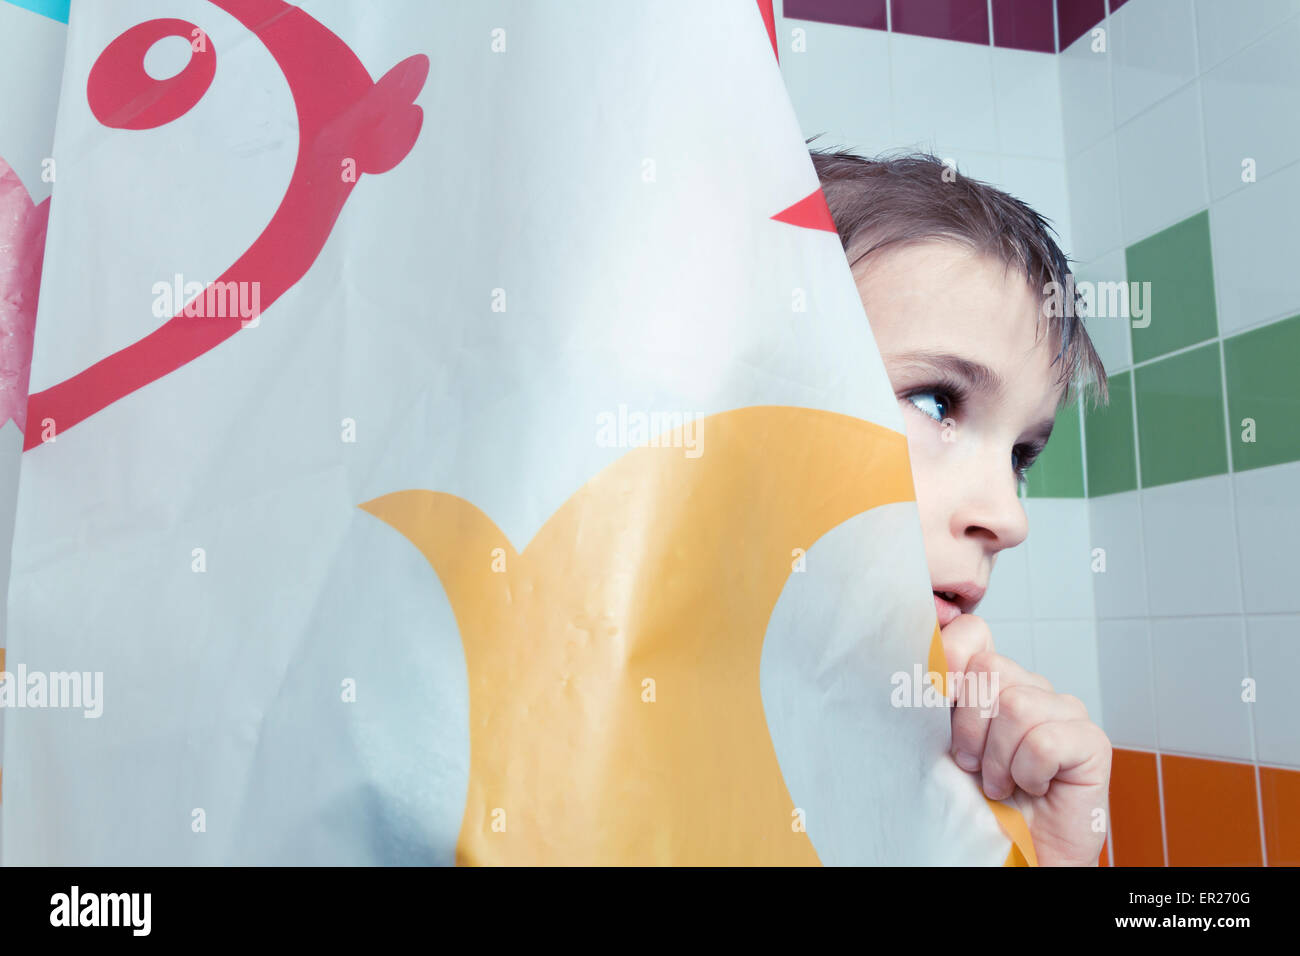 boy 8 years behind shower curtain - Stock Image